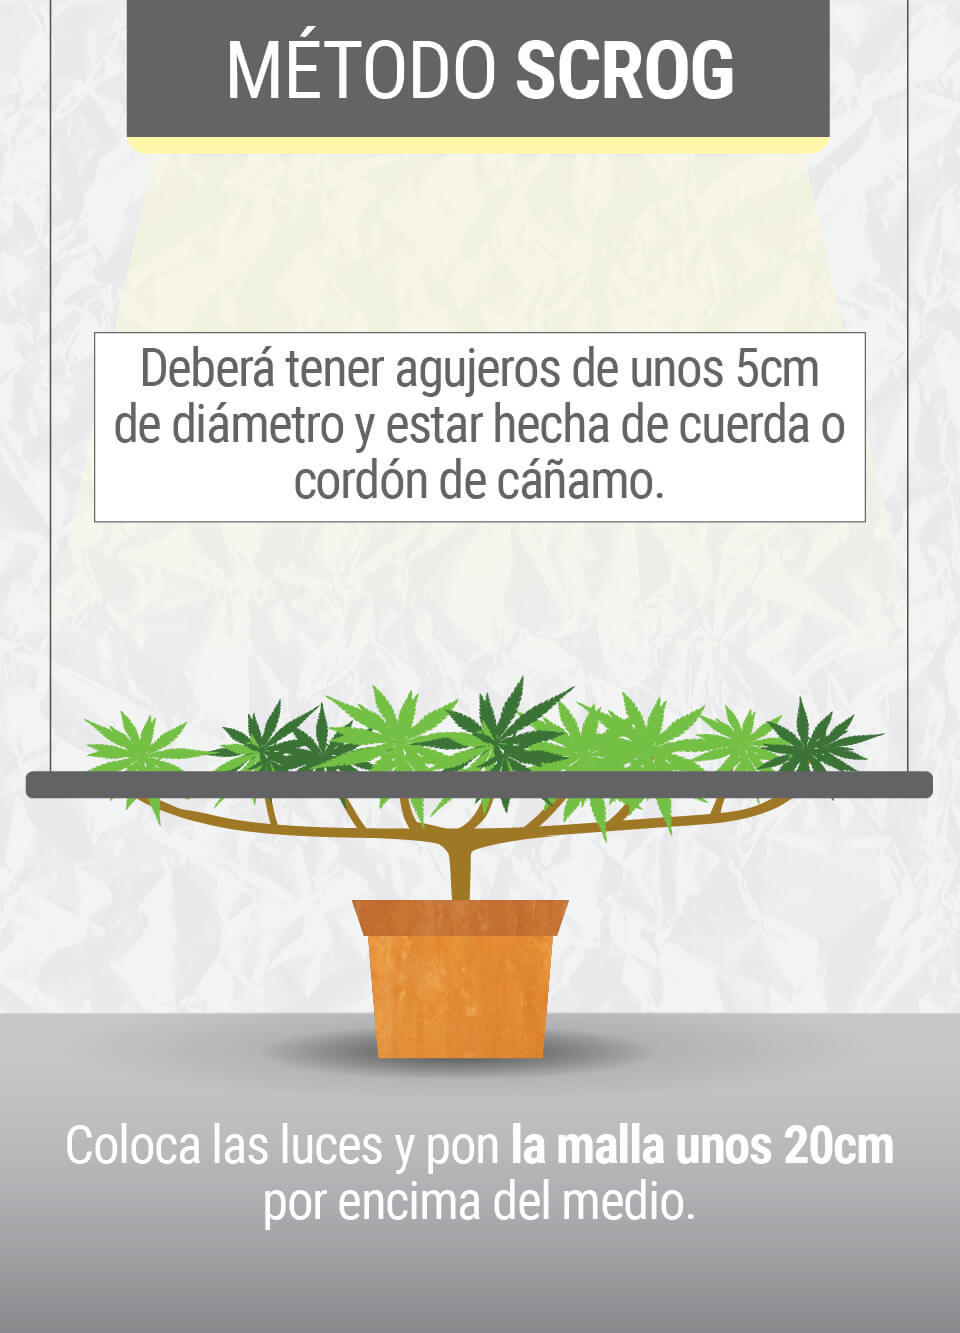 Cultivando cannabis con el método SCROG (Screen of Green) Segunda Fase